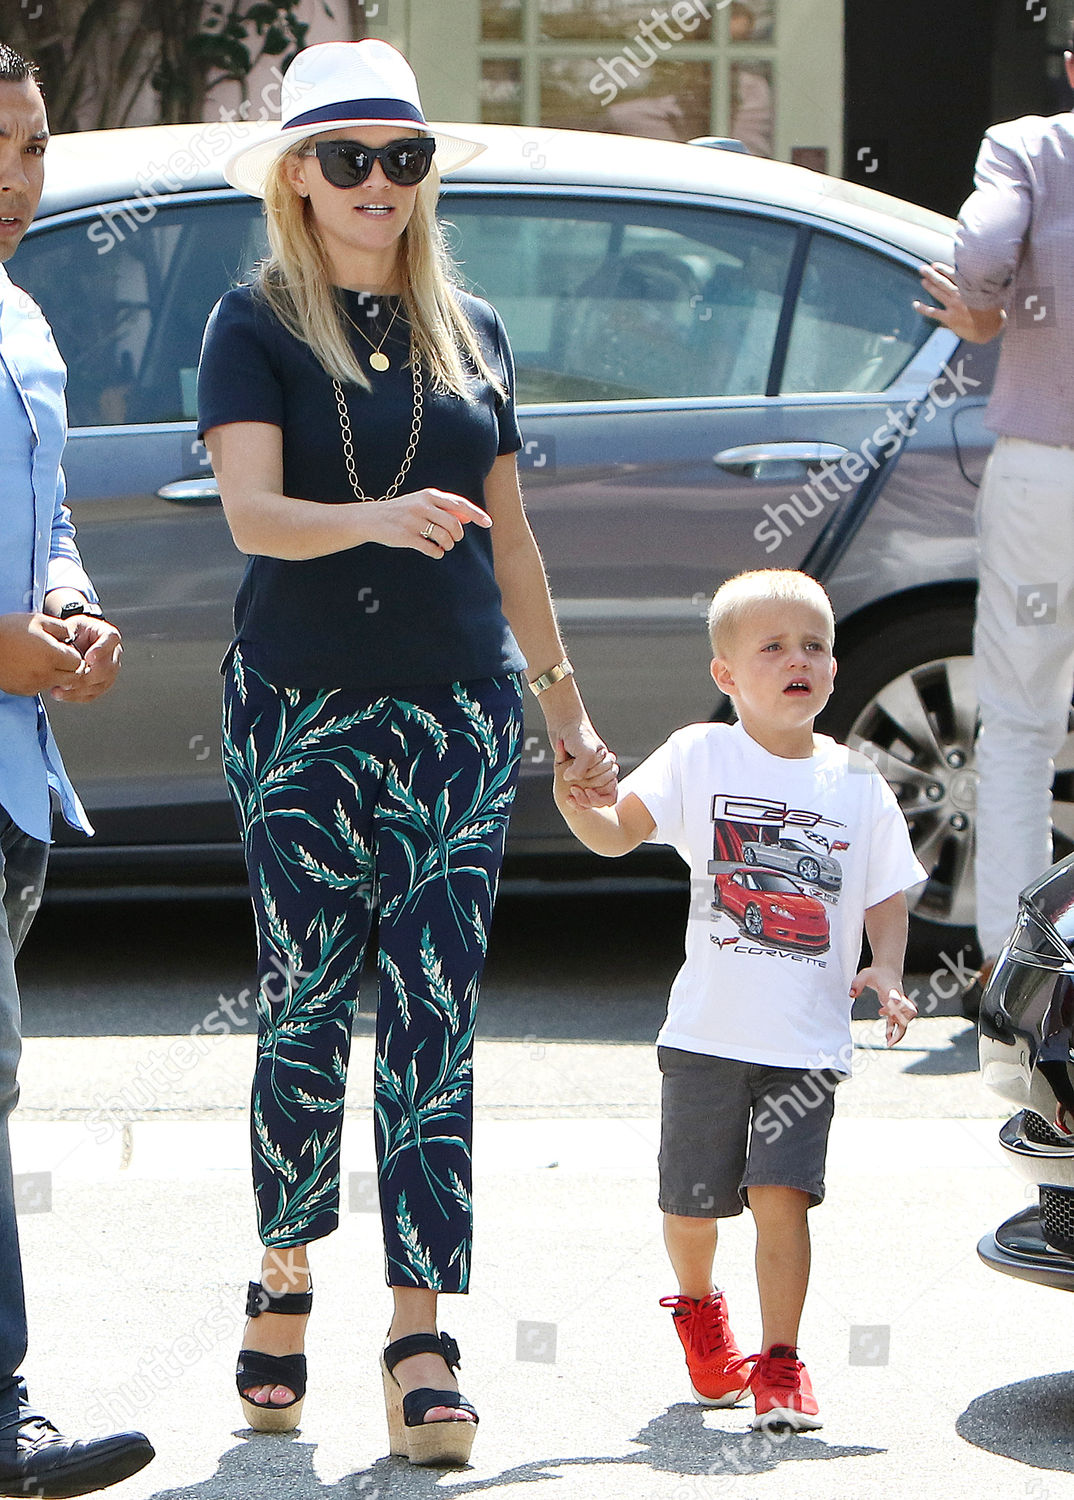 Reese Witherspoon Tennessee James Toth Editorial Stock Photo Stock Image Shutterstock Reese witherspoon & her husband jim toth were arrested because he failed the sobriety test & she told off. https www shutterstock com editorial image editorial reese witherspoon and jim toth out and about los angeles usa 27 aug 2016 5848566o